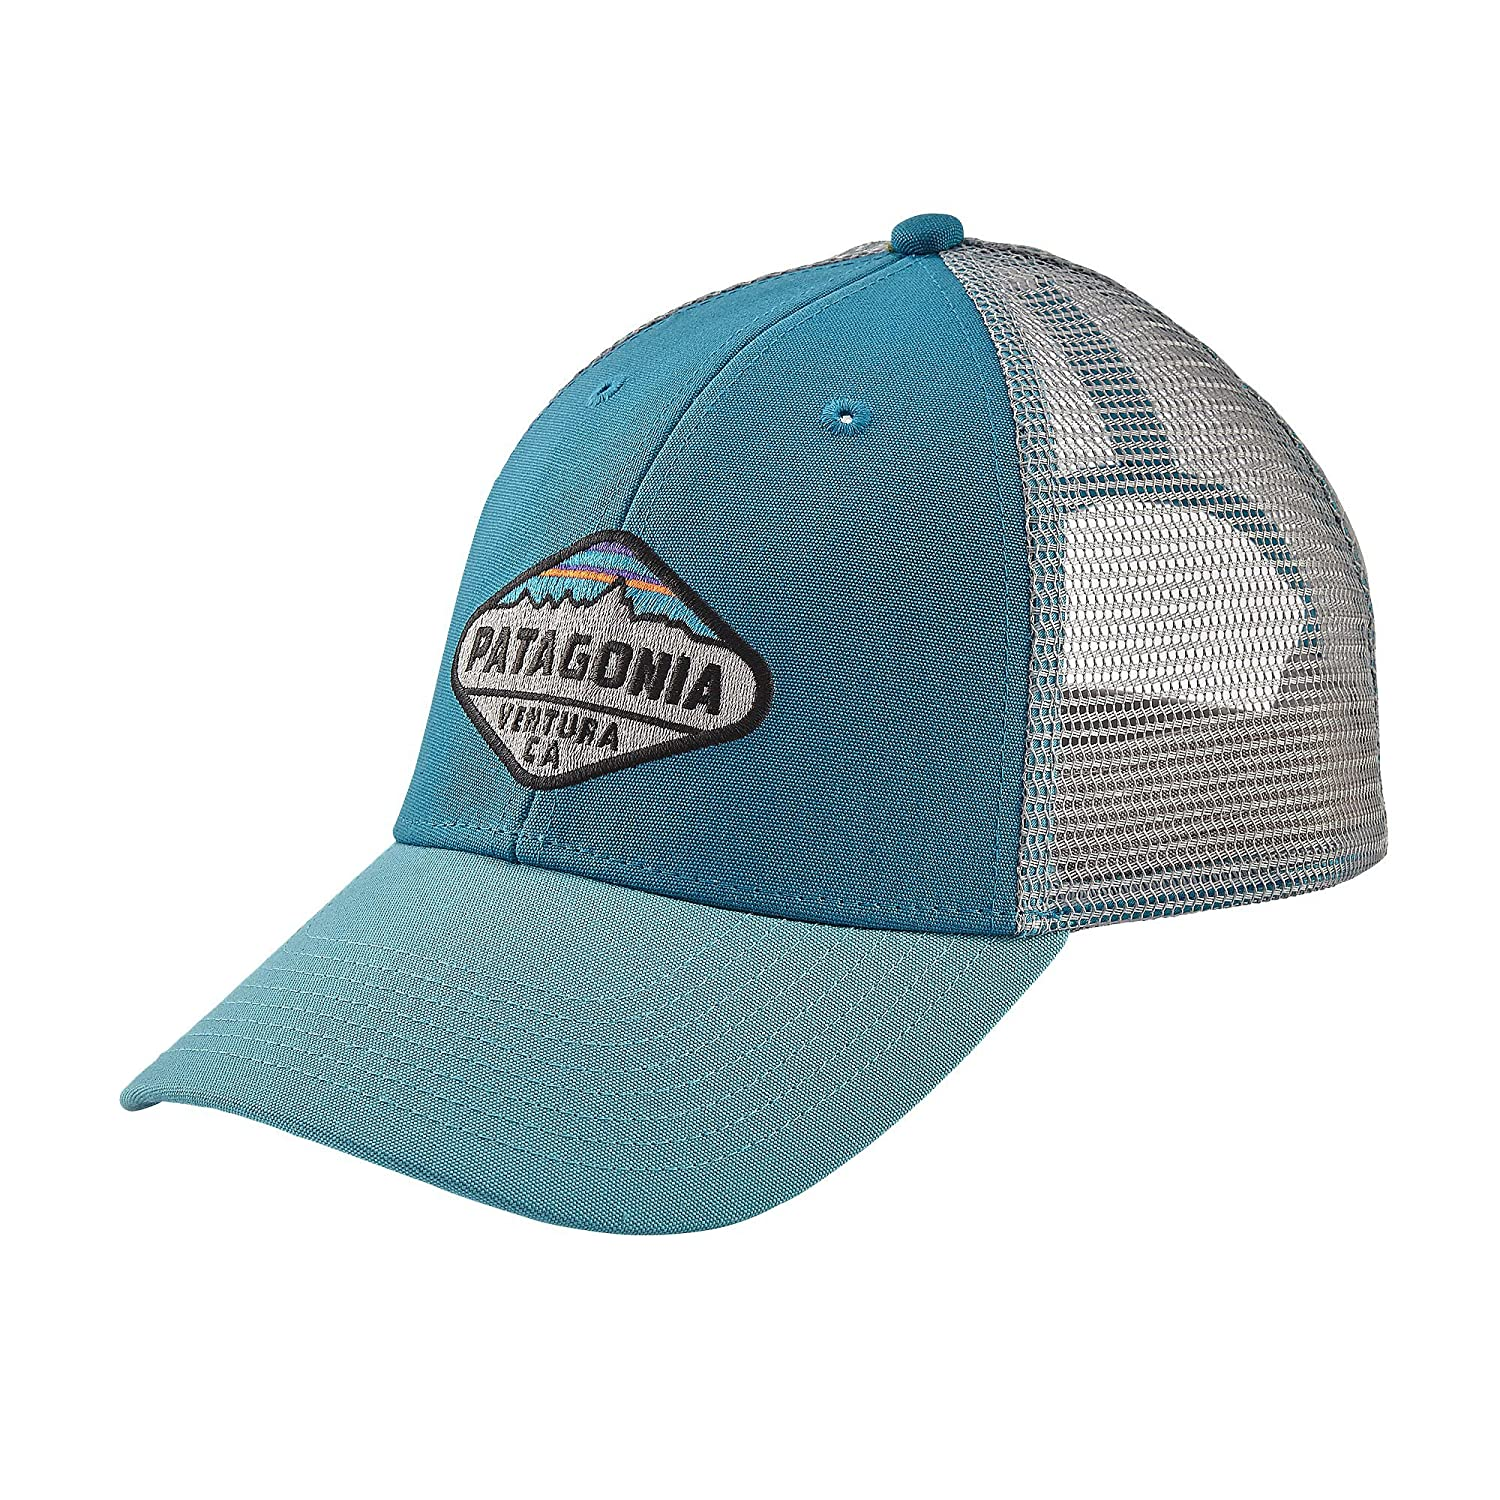 d89a0cdd Amazon.com : Patagonia Fitz Roy Crest LoPro Trucker Hat DDRB OS : Sports &  Outdoors